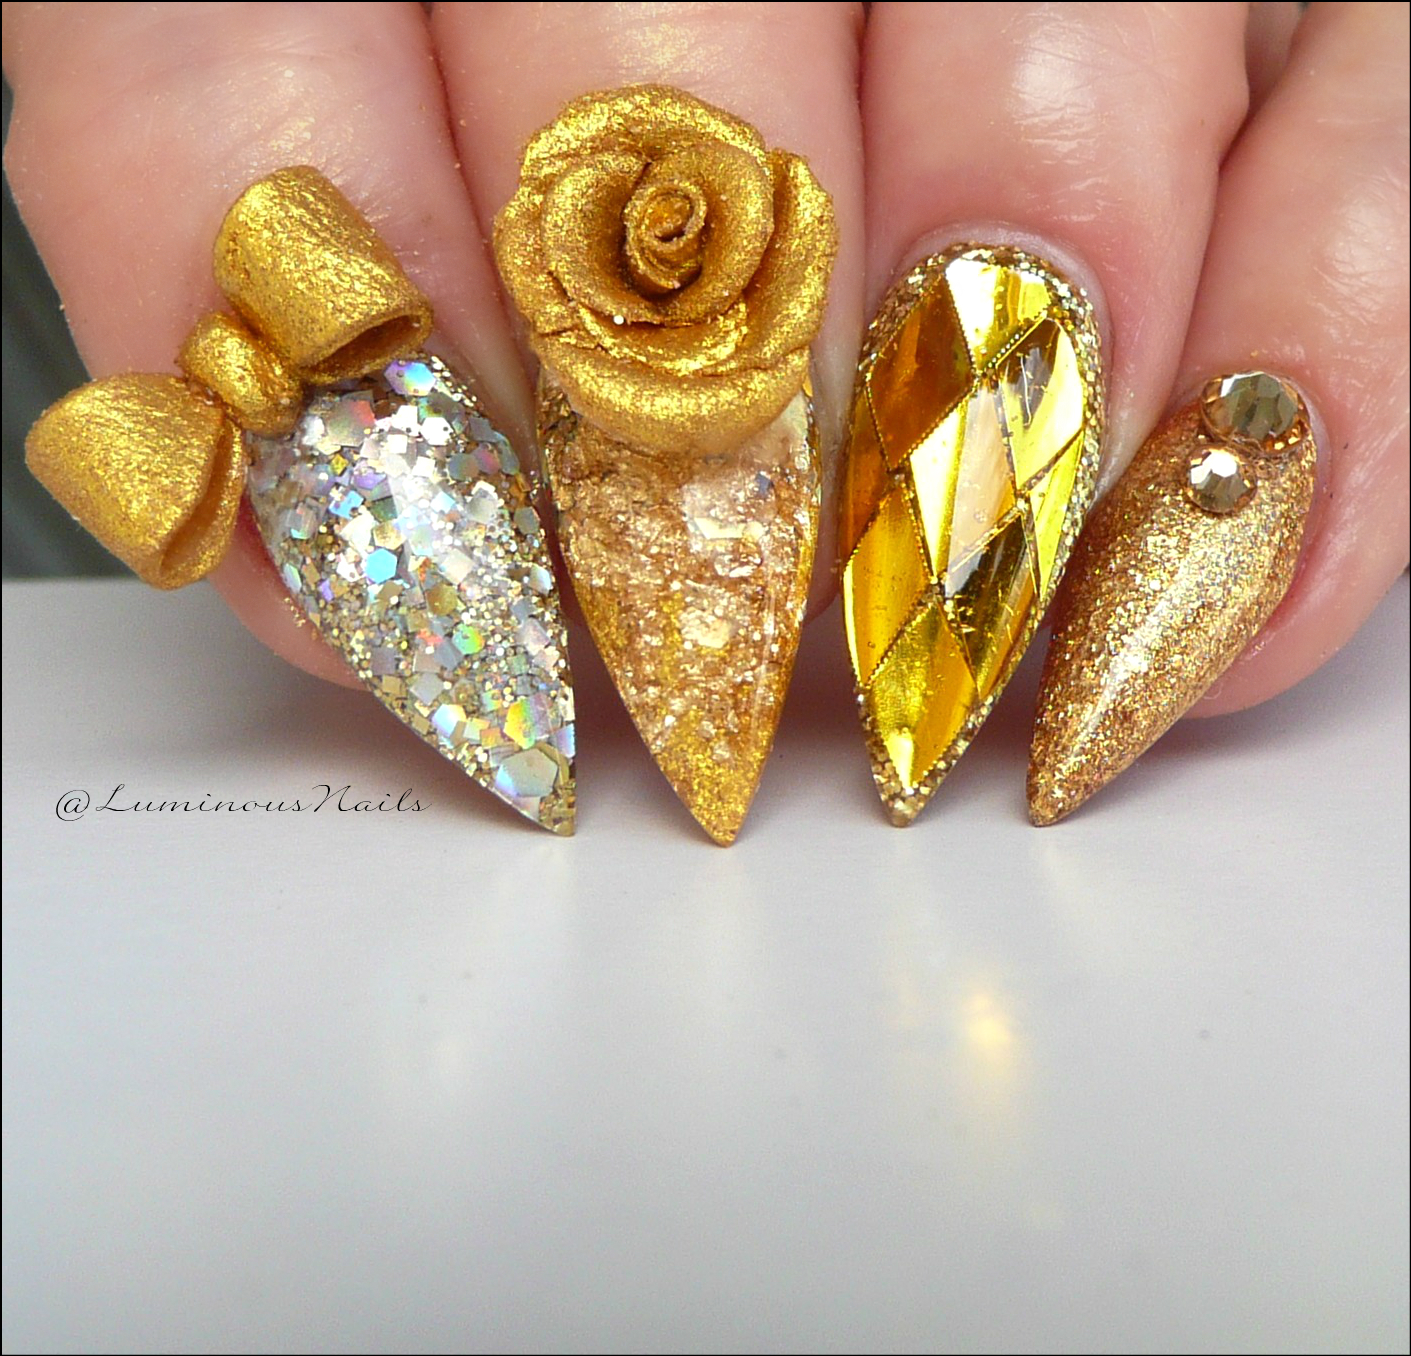 Liquid Gold Acrylic Nails With Bow Metallic Feature